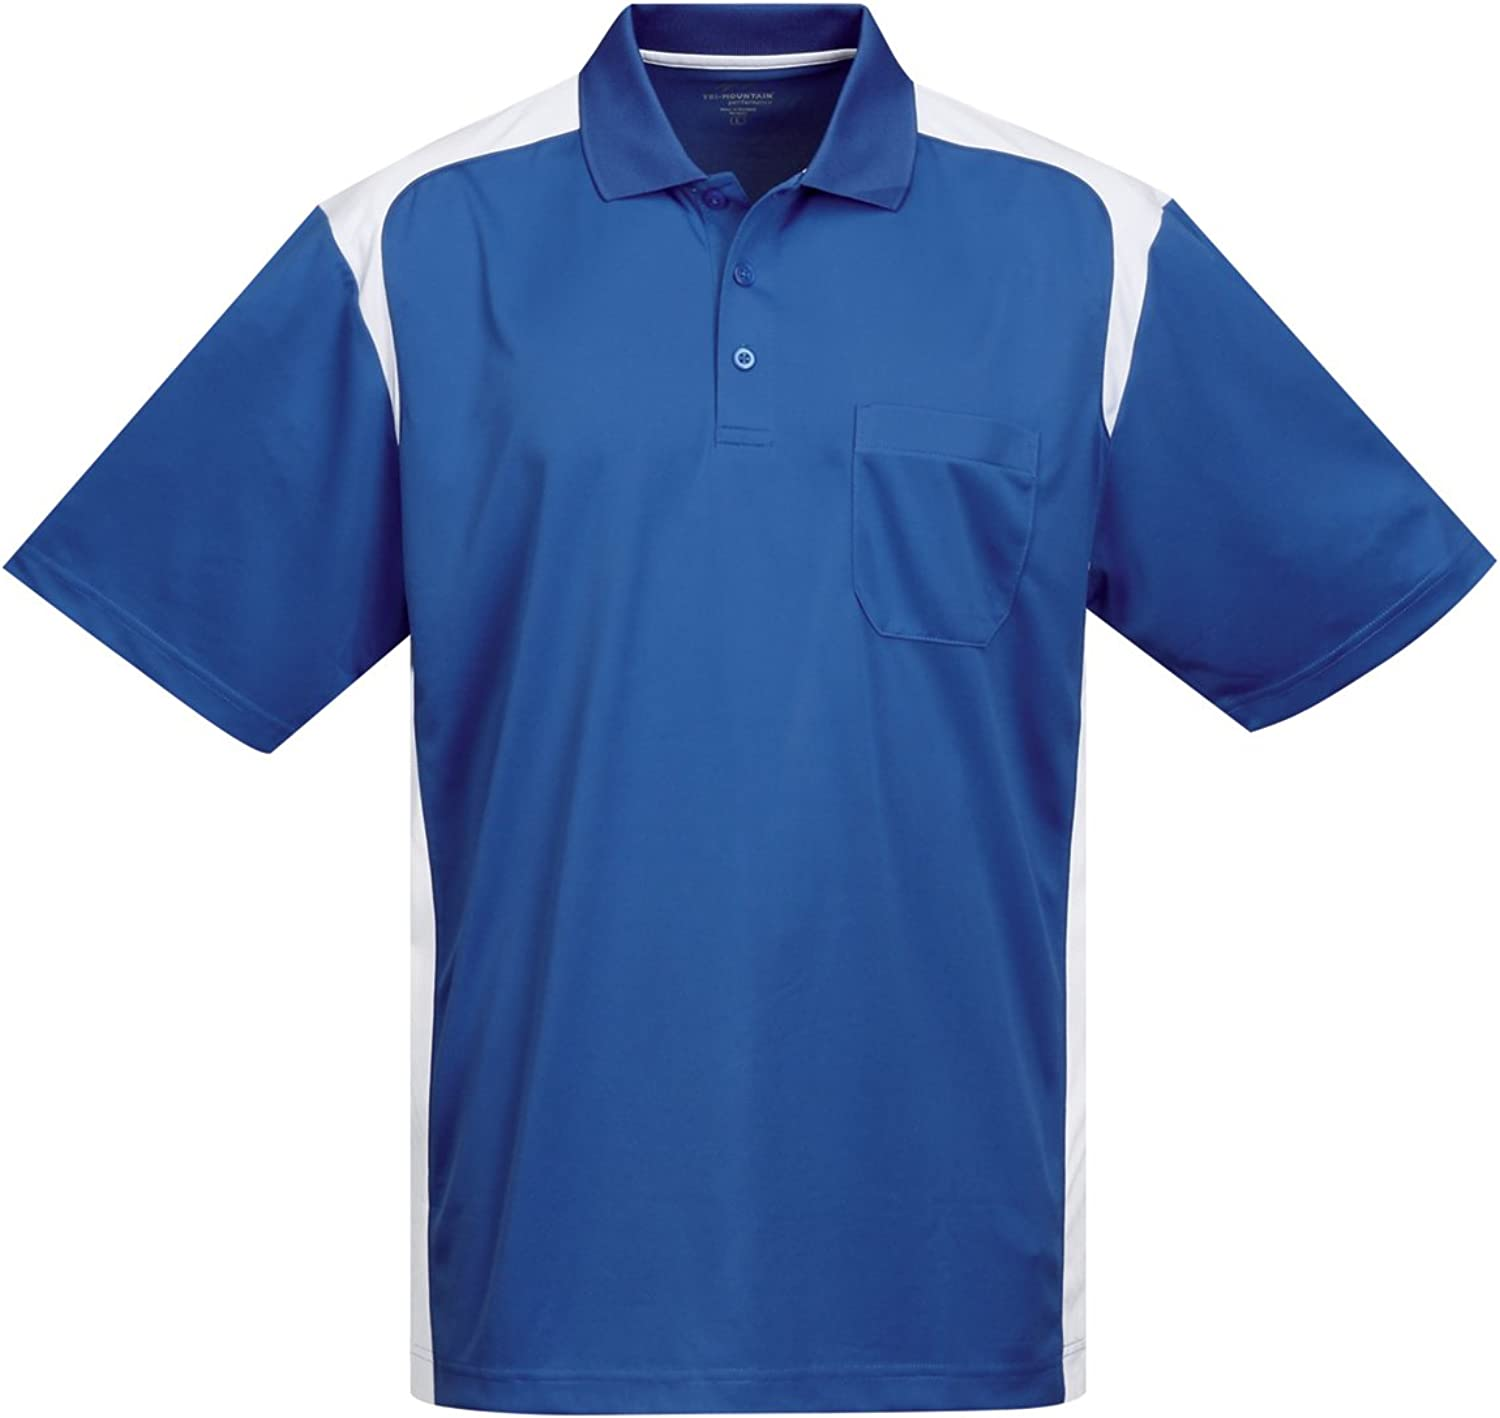 Tri-Mountain Performance Mens K145P Blitz Pocket S//S Polo Shirt